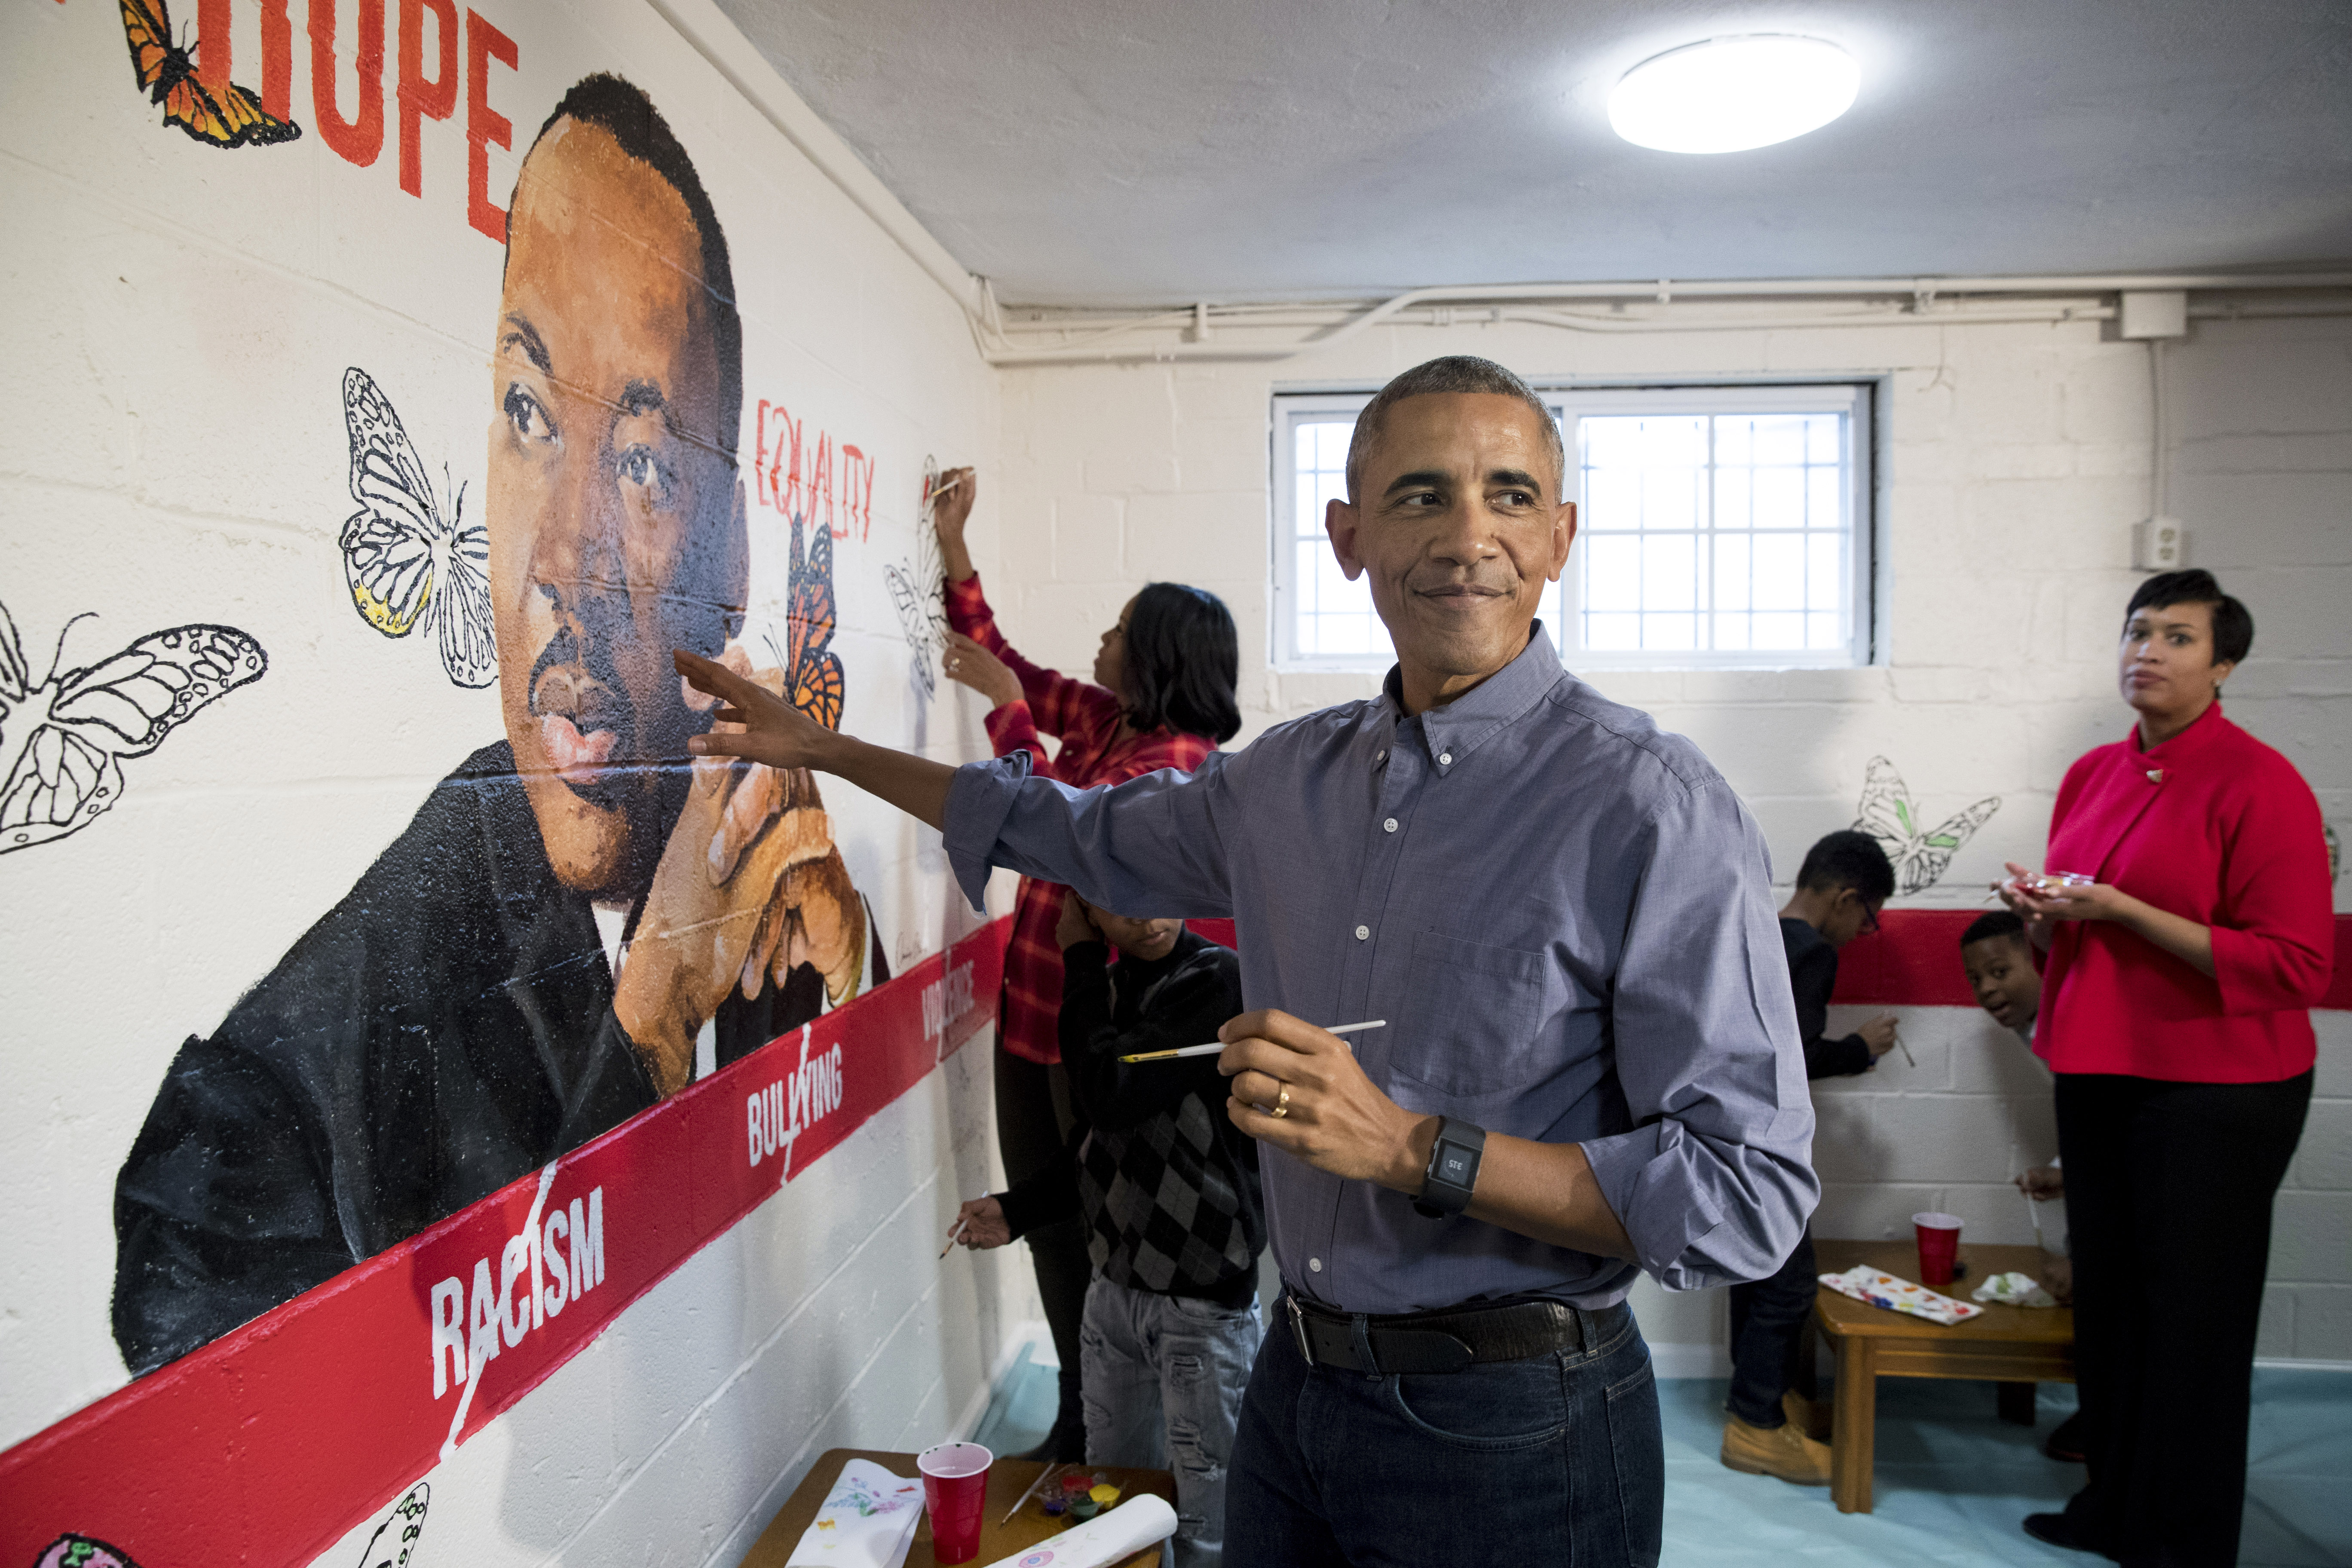 WASHINGTON, DC - JANUARY 16: (AFP OUT) U.S. President Barack Obama (Front) and First Lady Michelle Obama (Back) help paint a mural depicting Martin Luther King Jr., as Mayor of Washington DC Muriel Bowser (R) looks on, at the Jobs Have Priority Naylor Road Family ShelterJanuary 16, 2017 in Washington, DC. President Obama and the First Lady attended a service event at the Jobs Have Priority Naylor Road Family Shelter for Martin Luther King Jr. Day. (Photo by MICHAEL REYNOLDS-Pool/Getty Images)